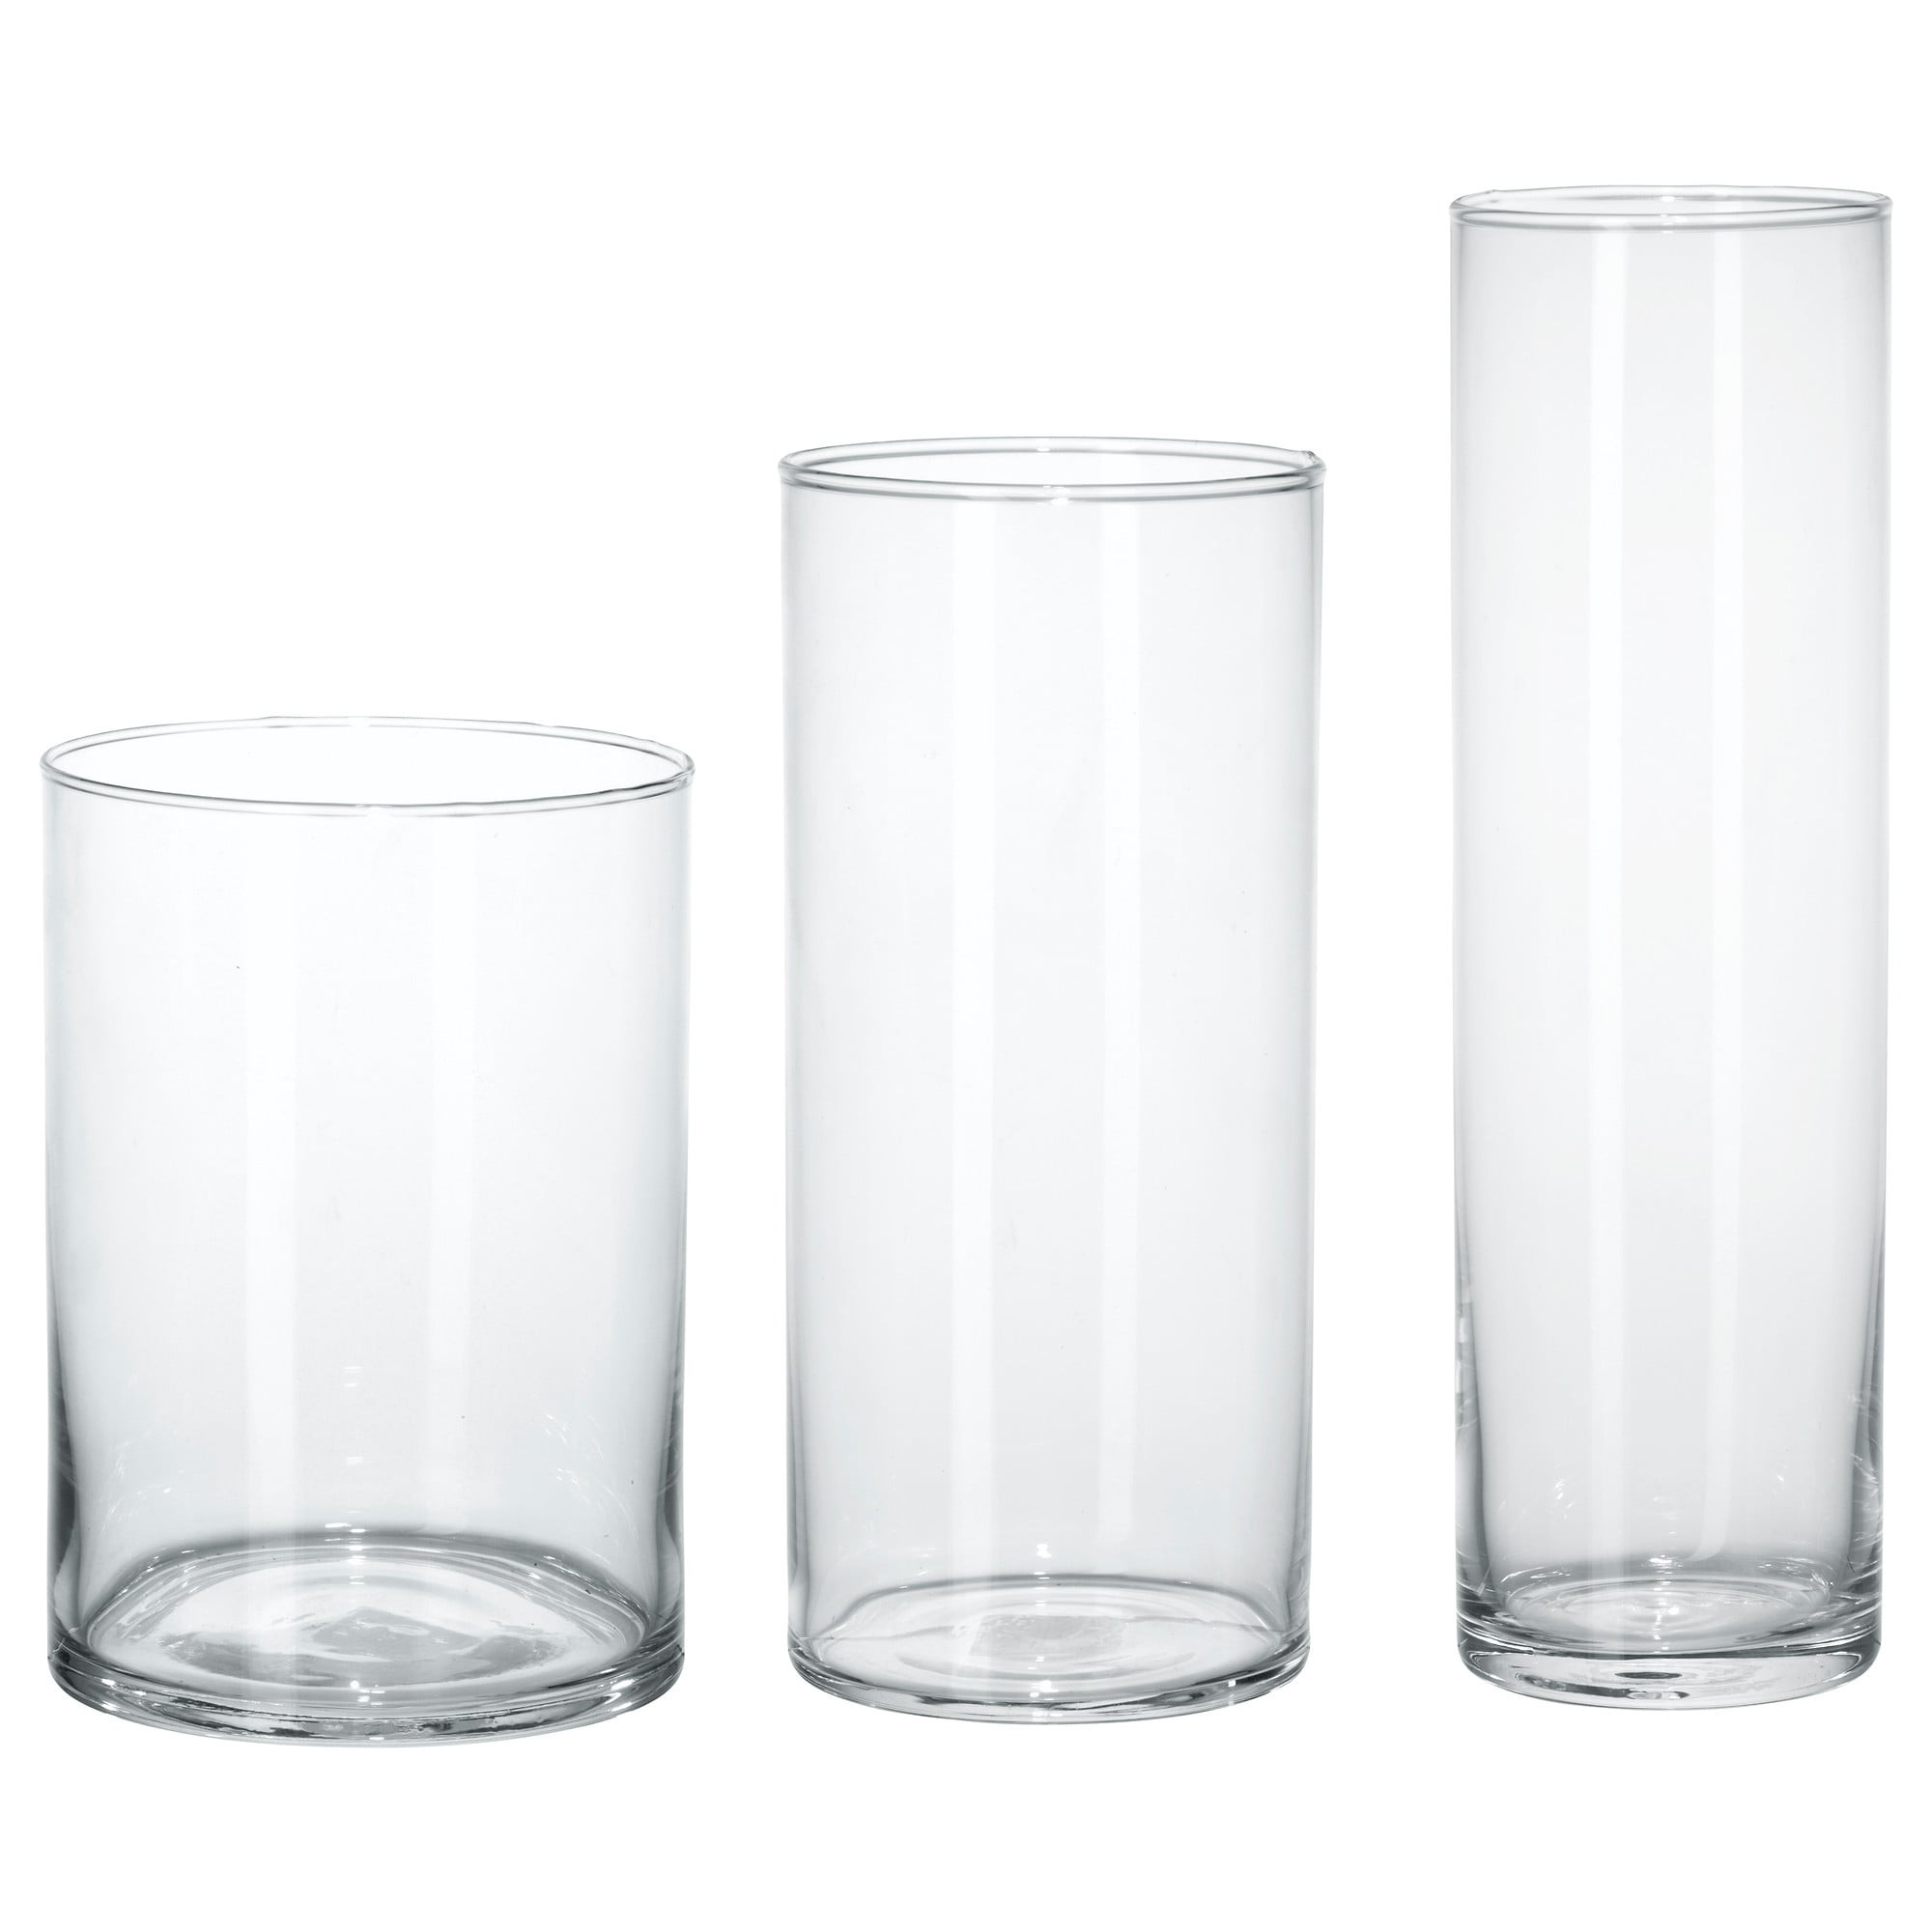 clear glass bud vases of cylinder vase set of 3 ikea throughout english frana§ais